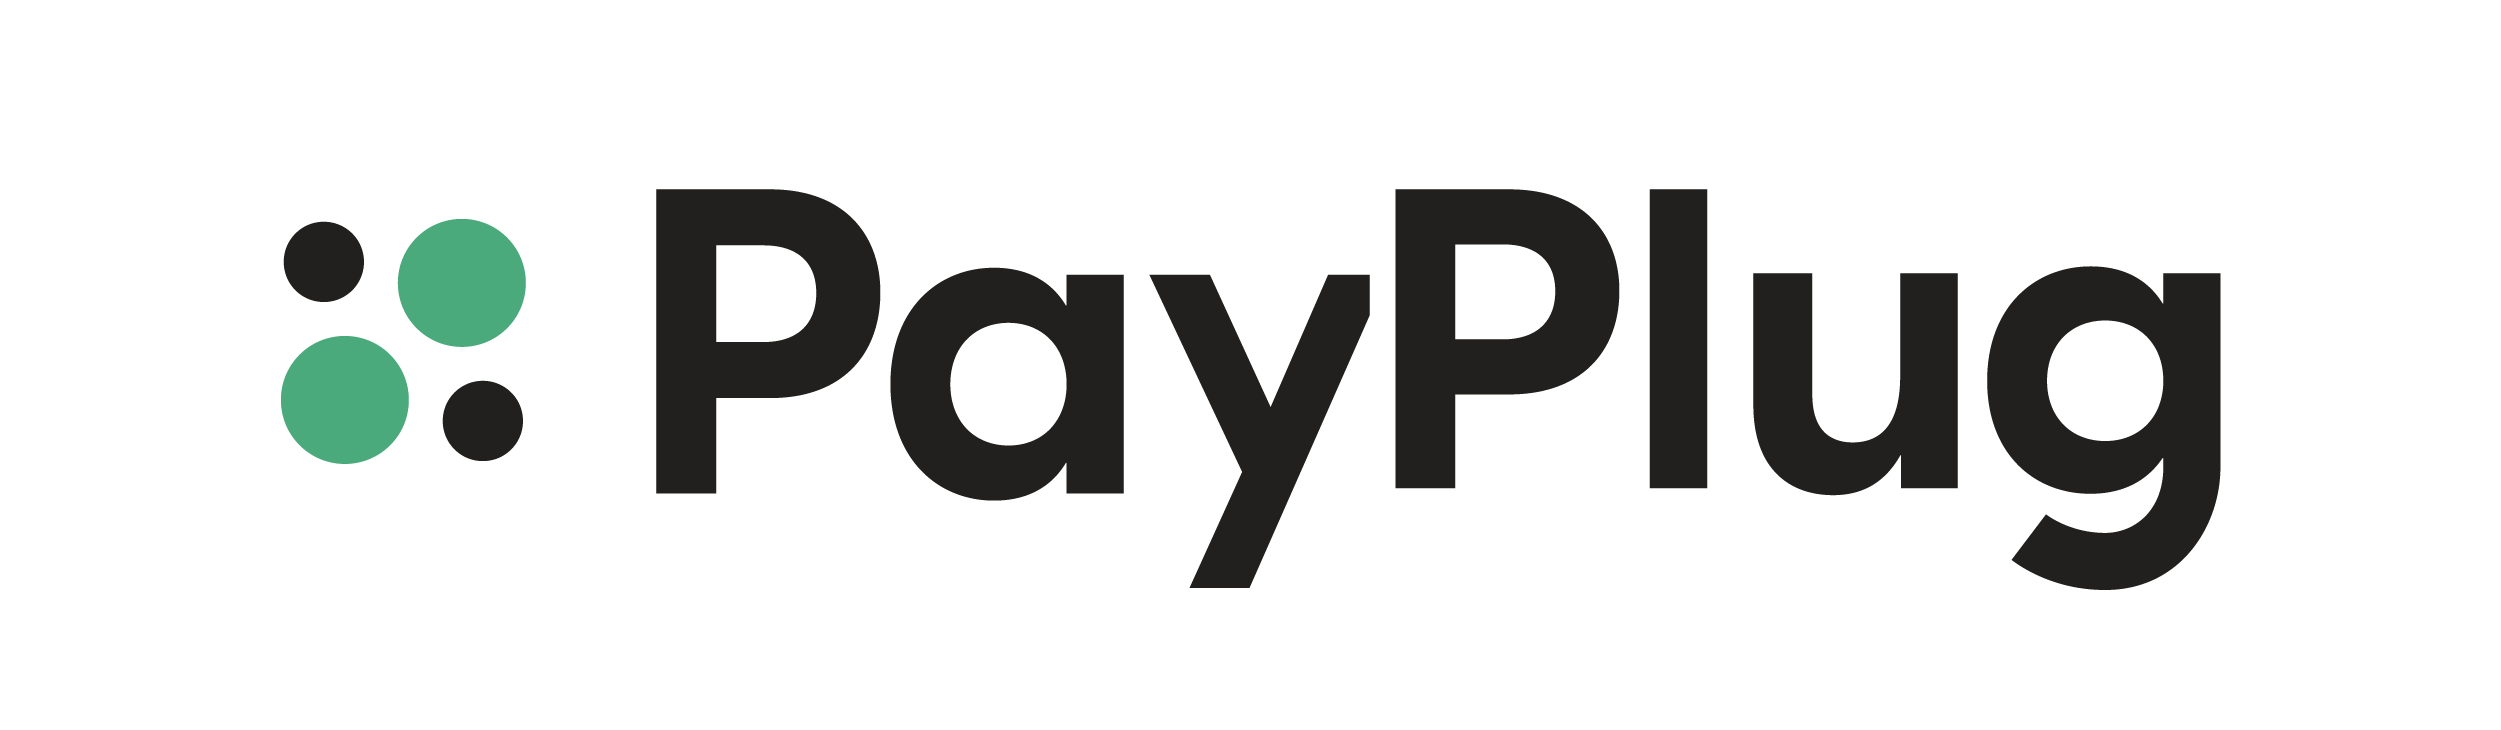 payplug_logo_with_icon.png